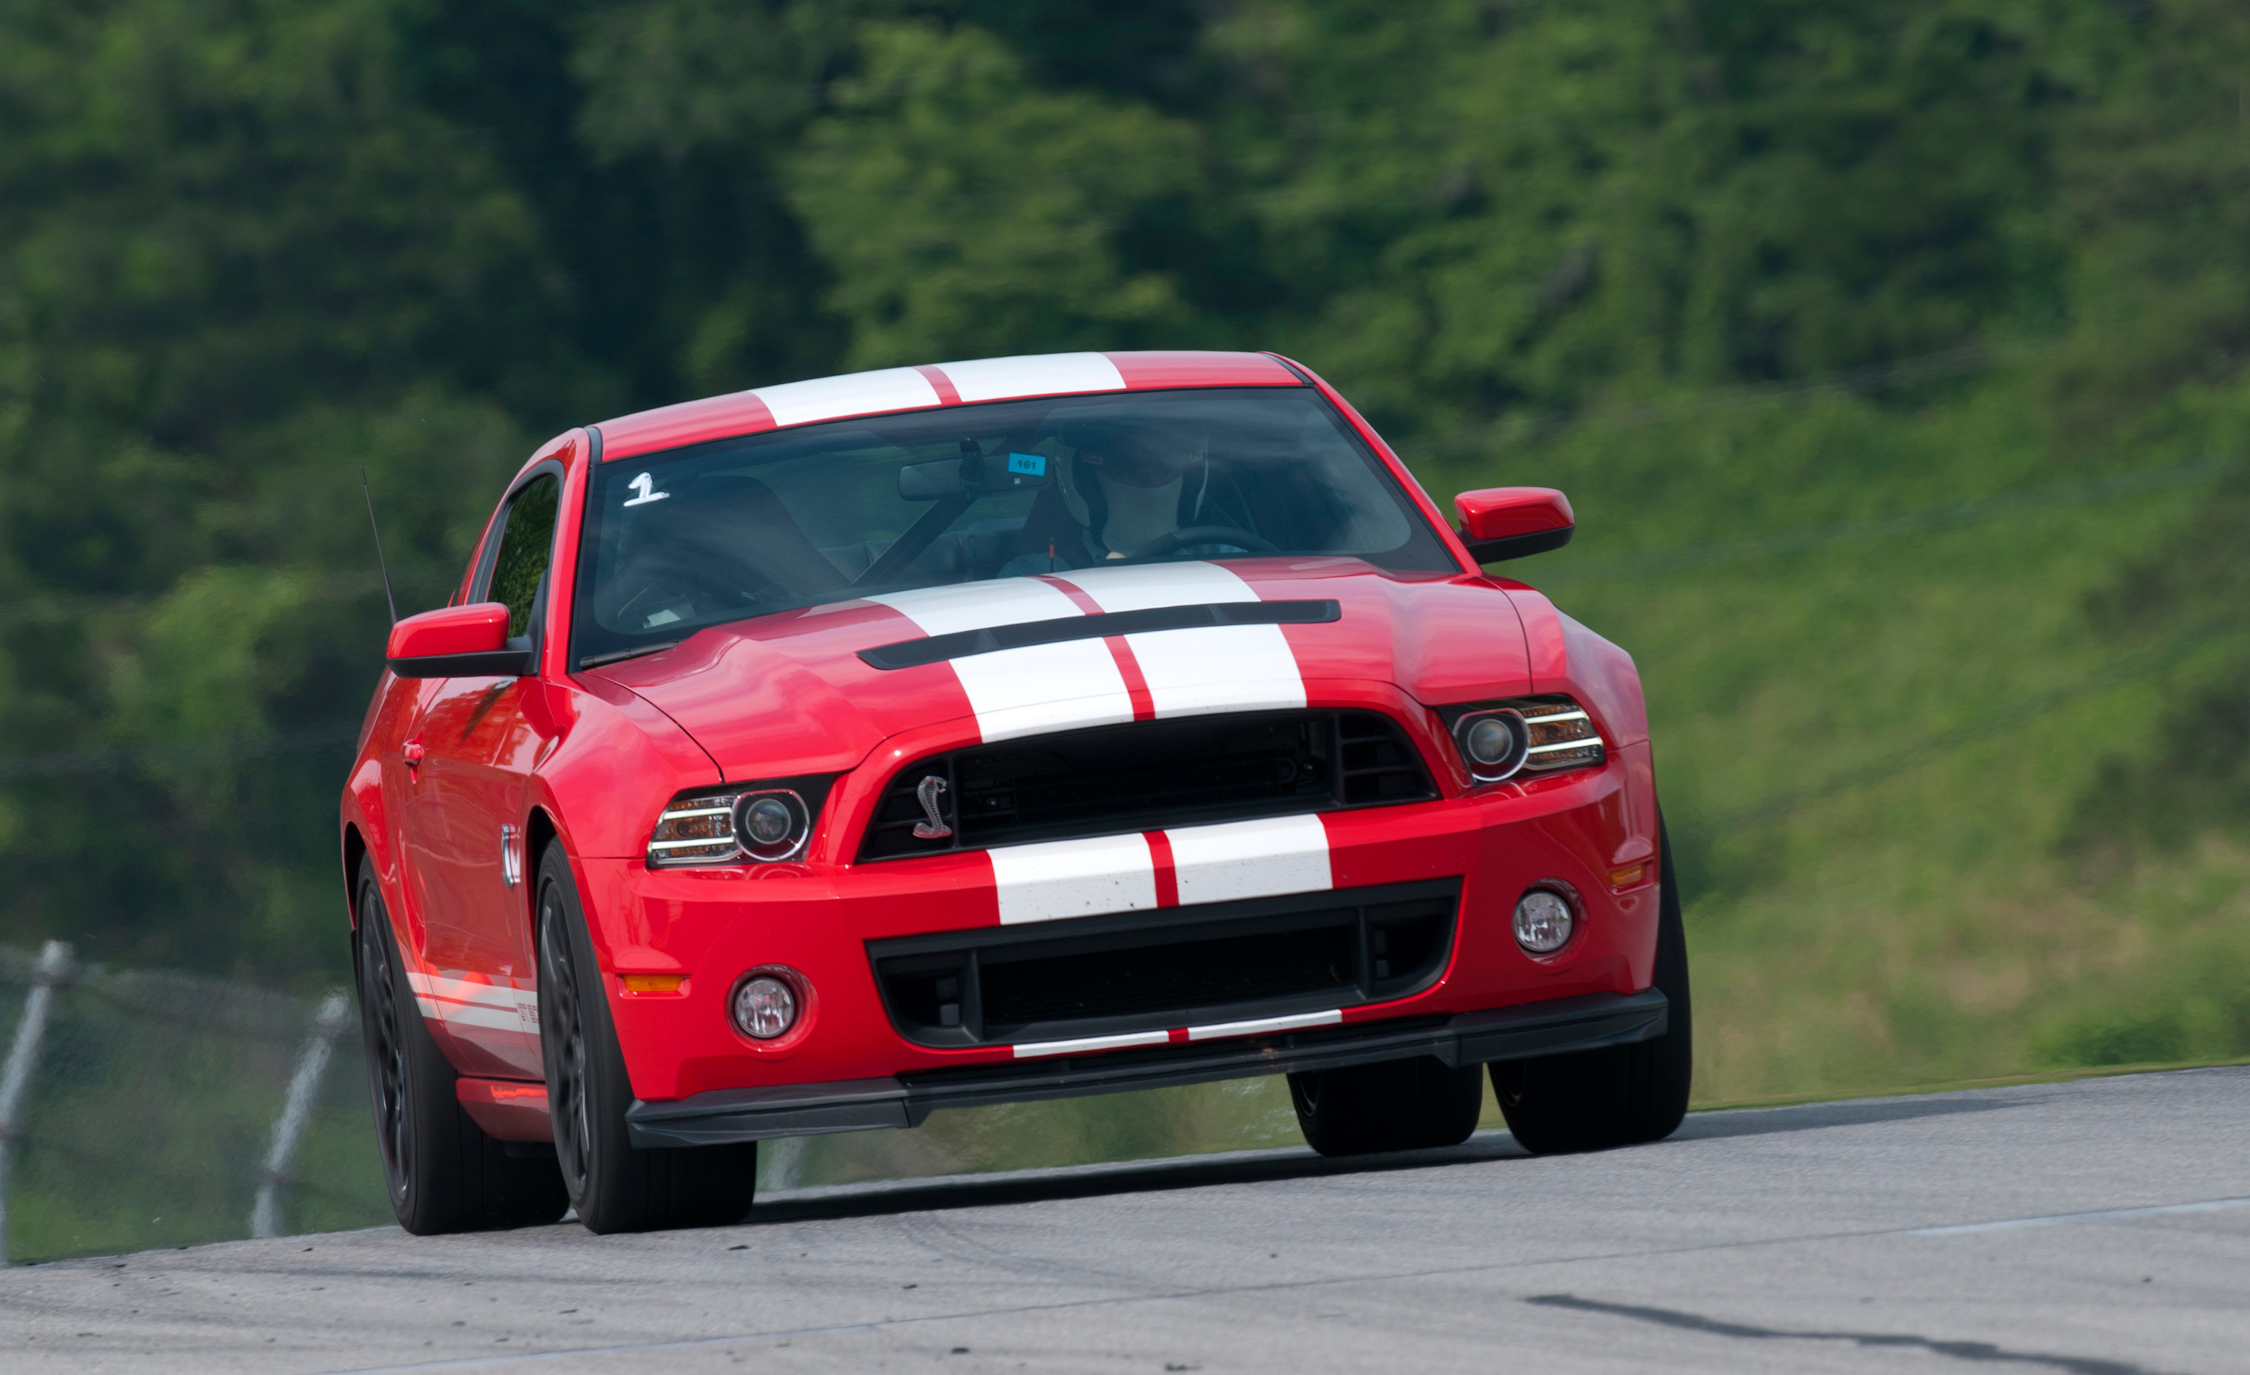 2013 Ford Mustang Shelby GT500 Red Test Drive Front View (View 6 of 47)